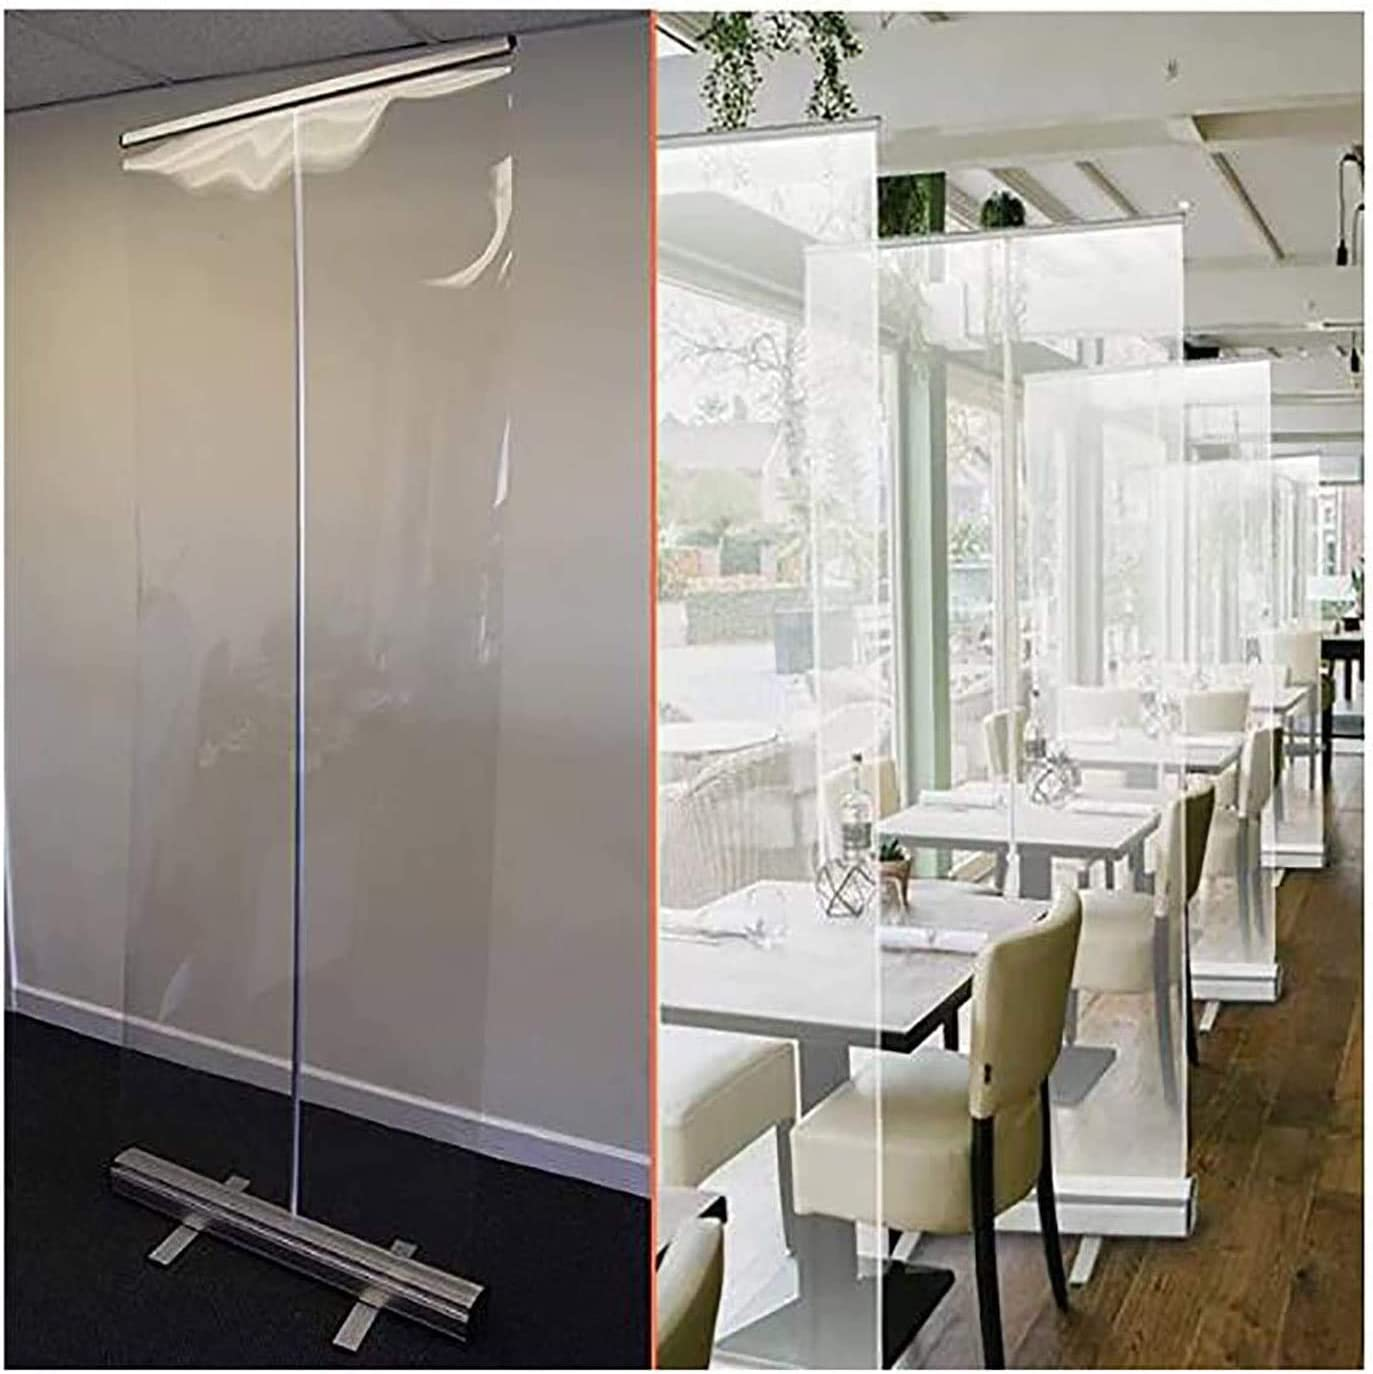 (Using in Business) Transparent Pull Up Banner Screen Sneeze Guard Shield Plastic Divider Social Distancing Screen,6001600mm Clear Film Protection Screen for Office,Stores,Restaurant,Classroom,Gym,Sal